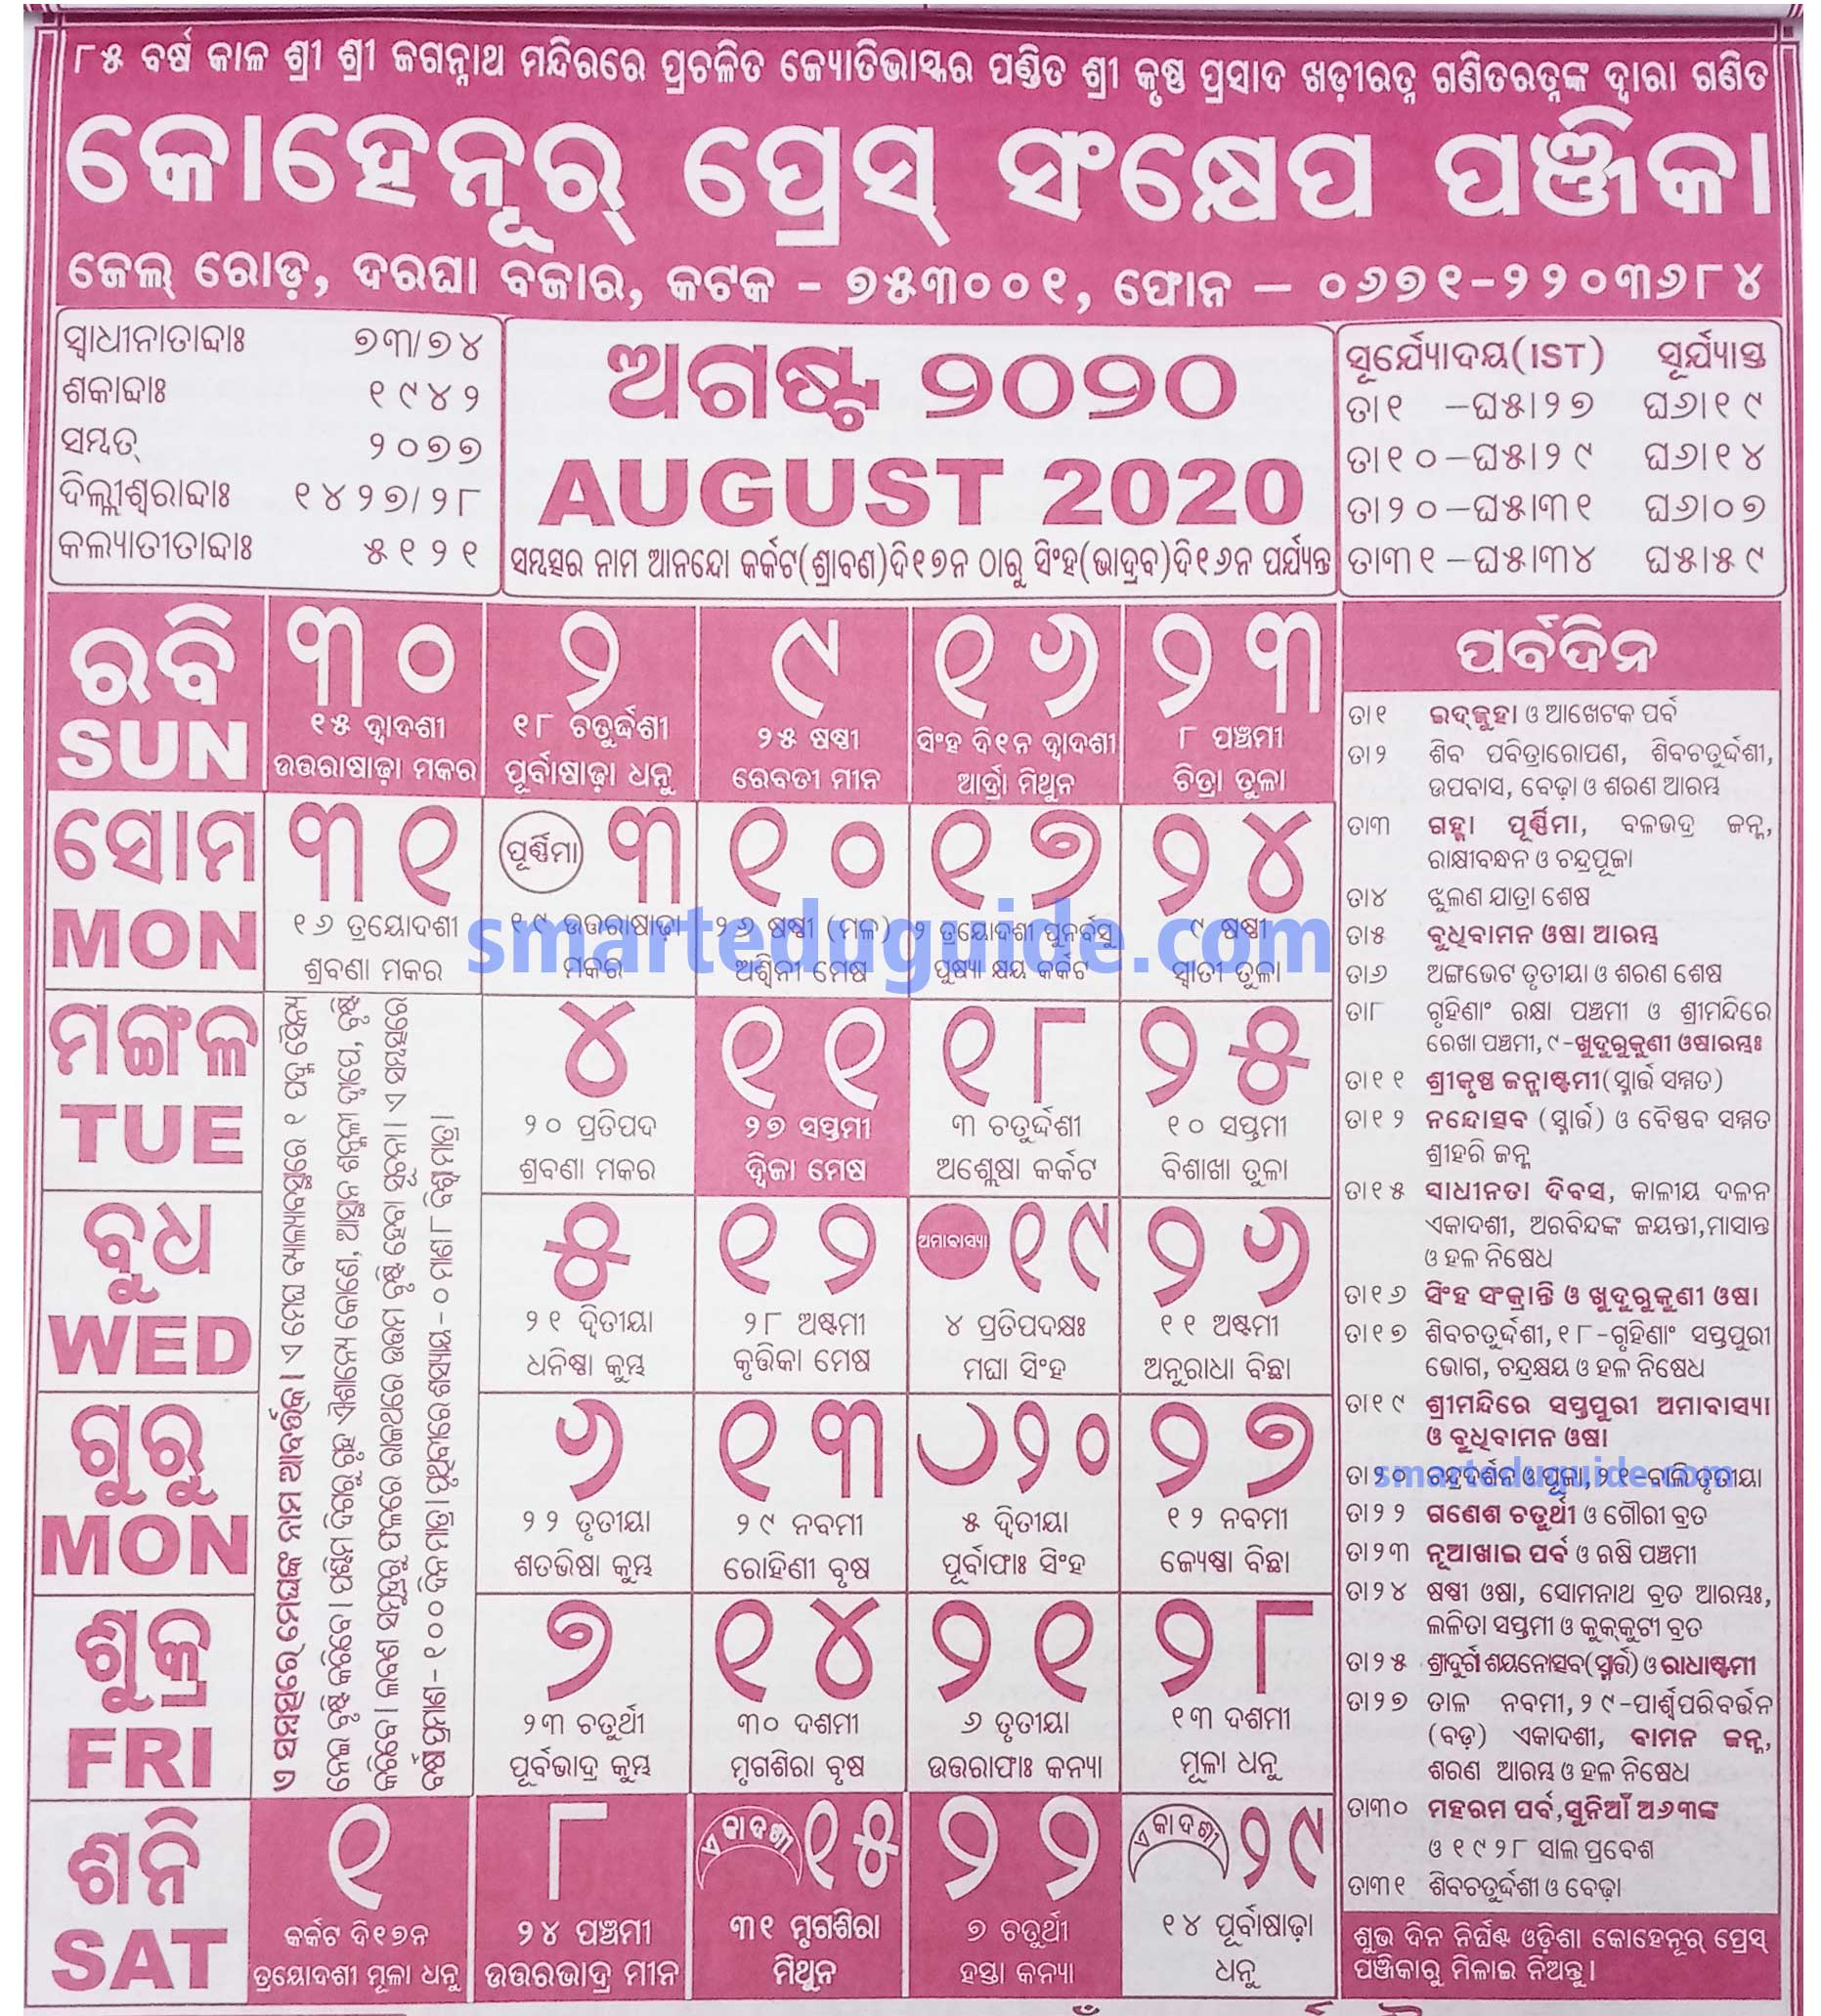 Free Download Pdf | Odishain within Oriya Calendar 2020 February